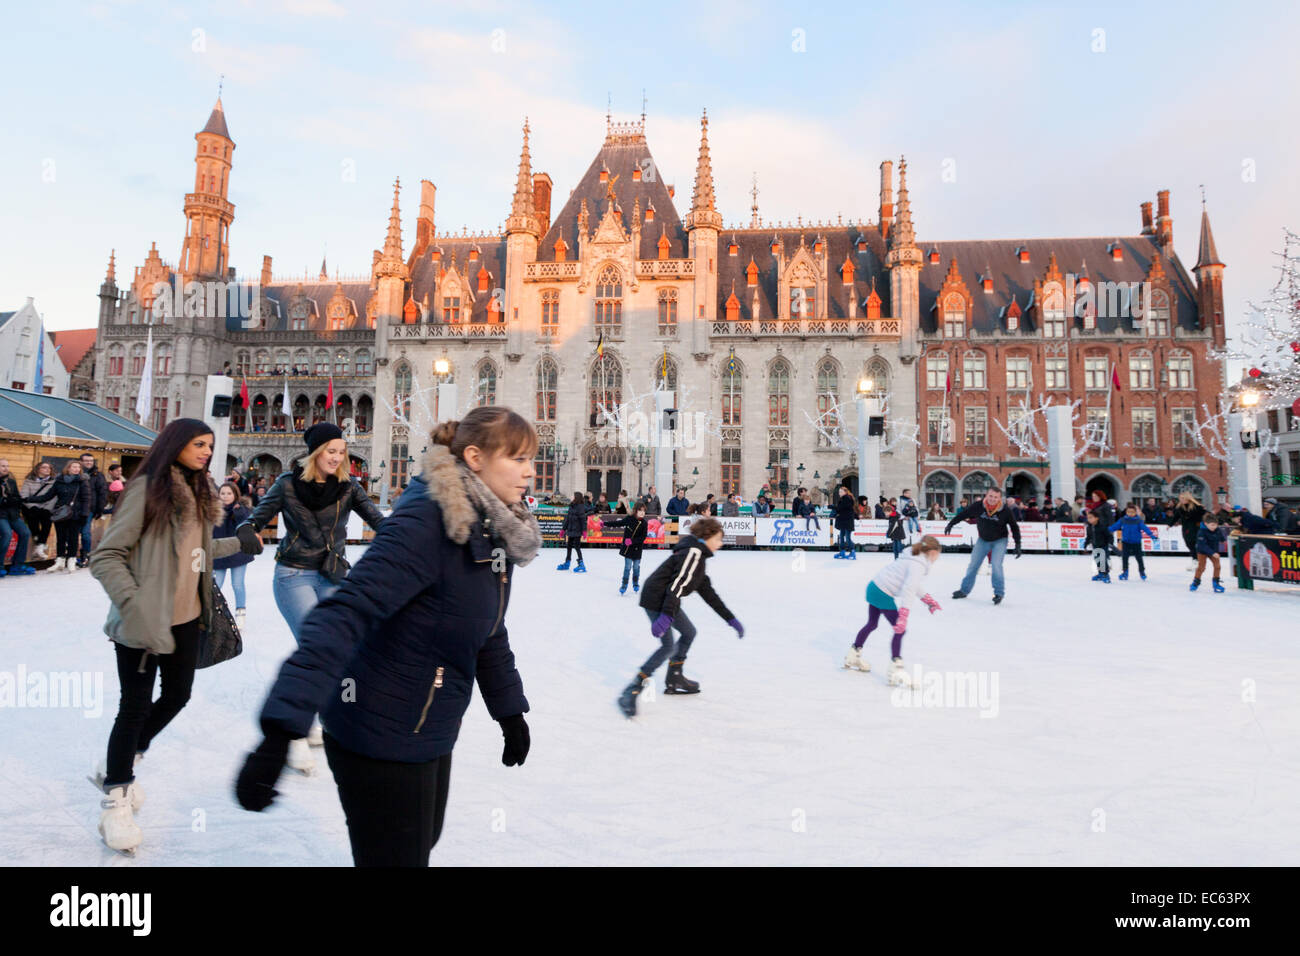 people-on-the-ice-skating-rink-at-the-br